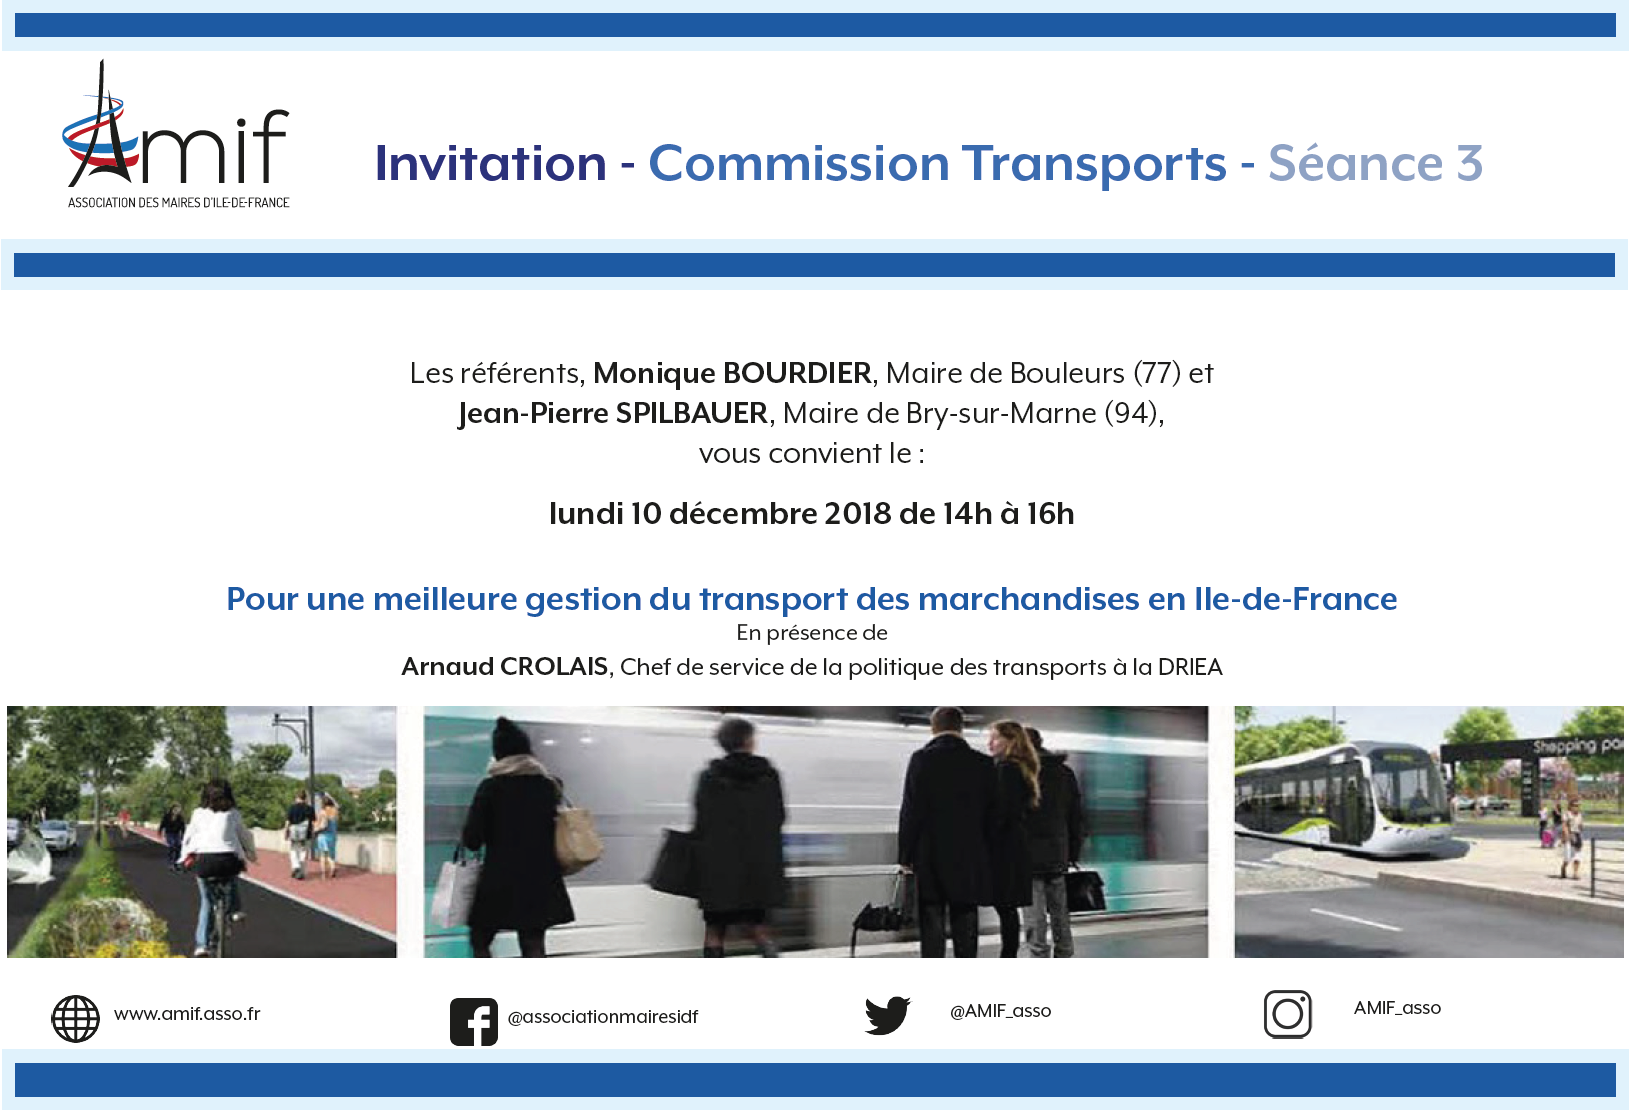 CommissionTransportsSeance310decembre2018v4